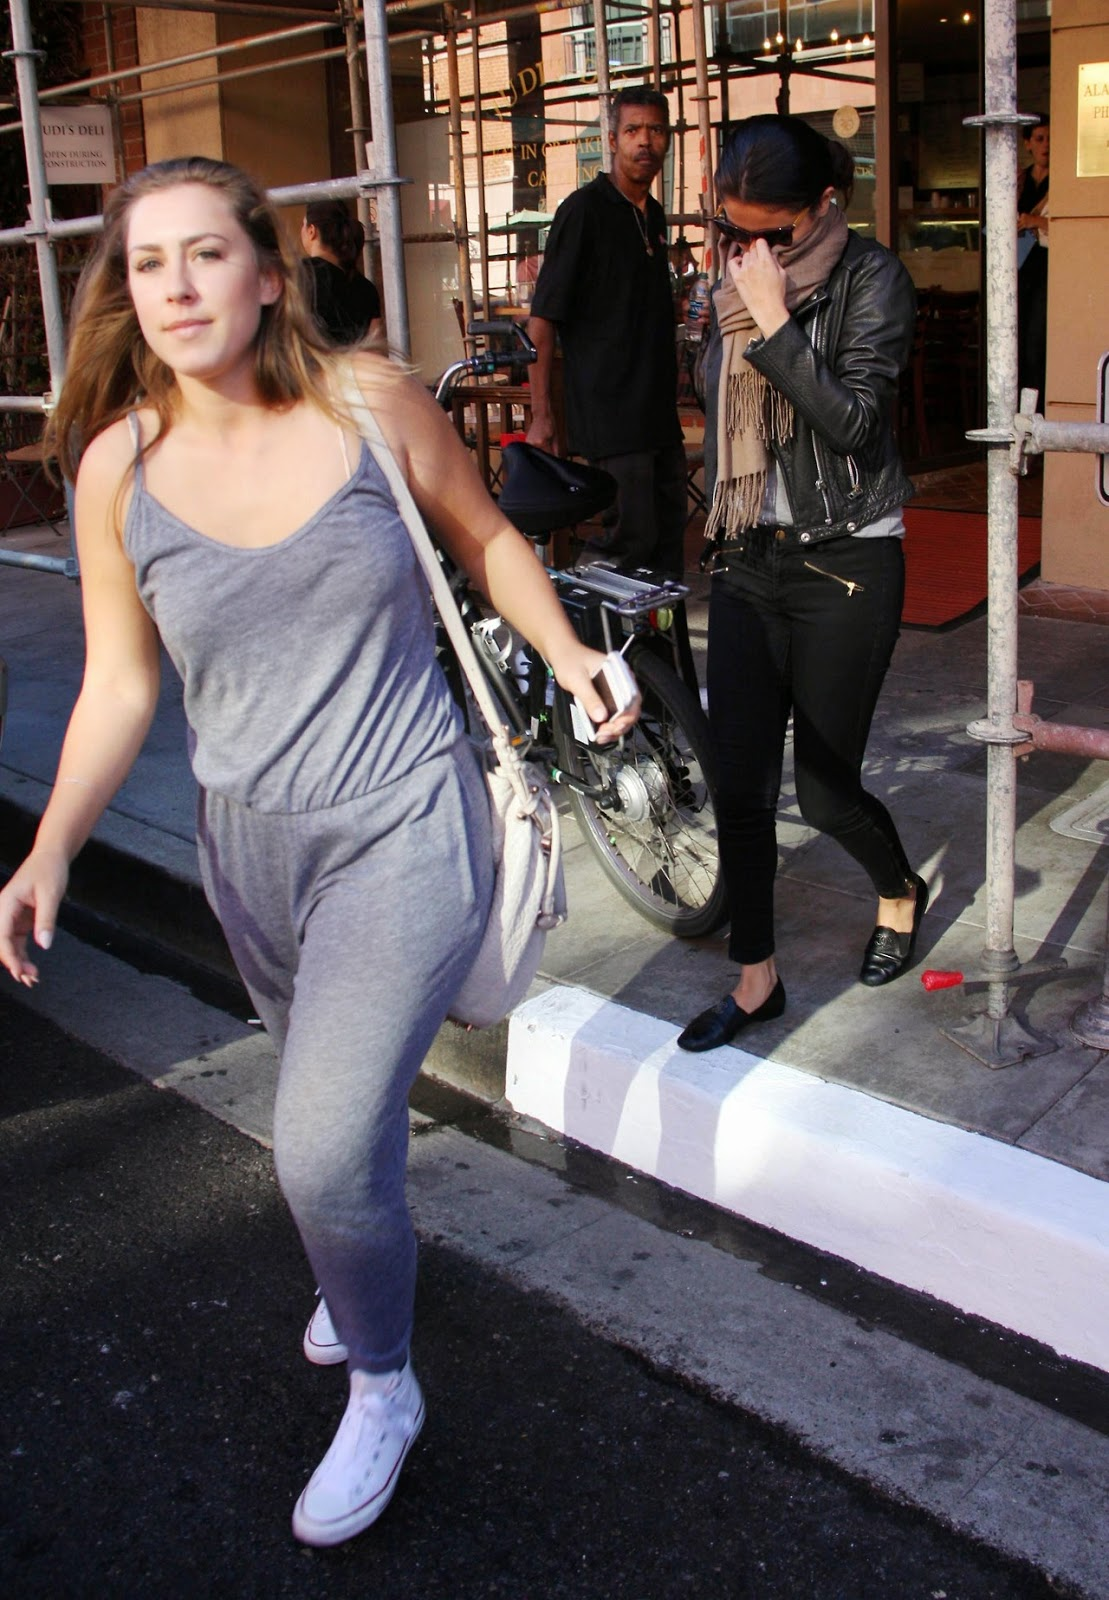 Selena leaving a medical building in Beverly Hills. (October 29) selena October MEDICAL Leaving Hills building Beverly